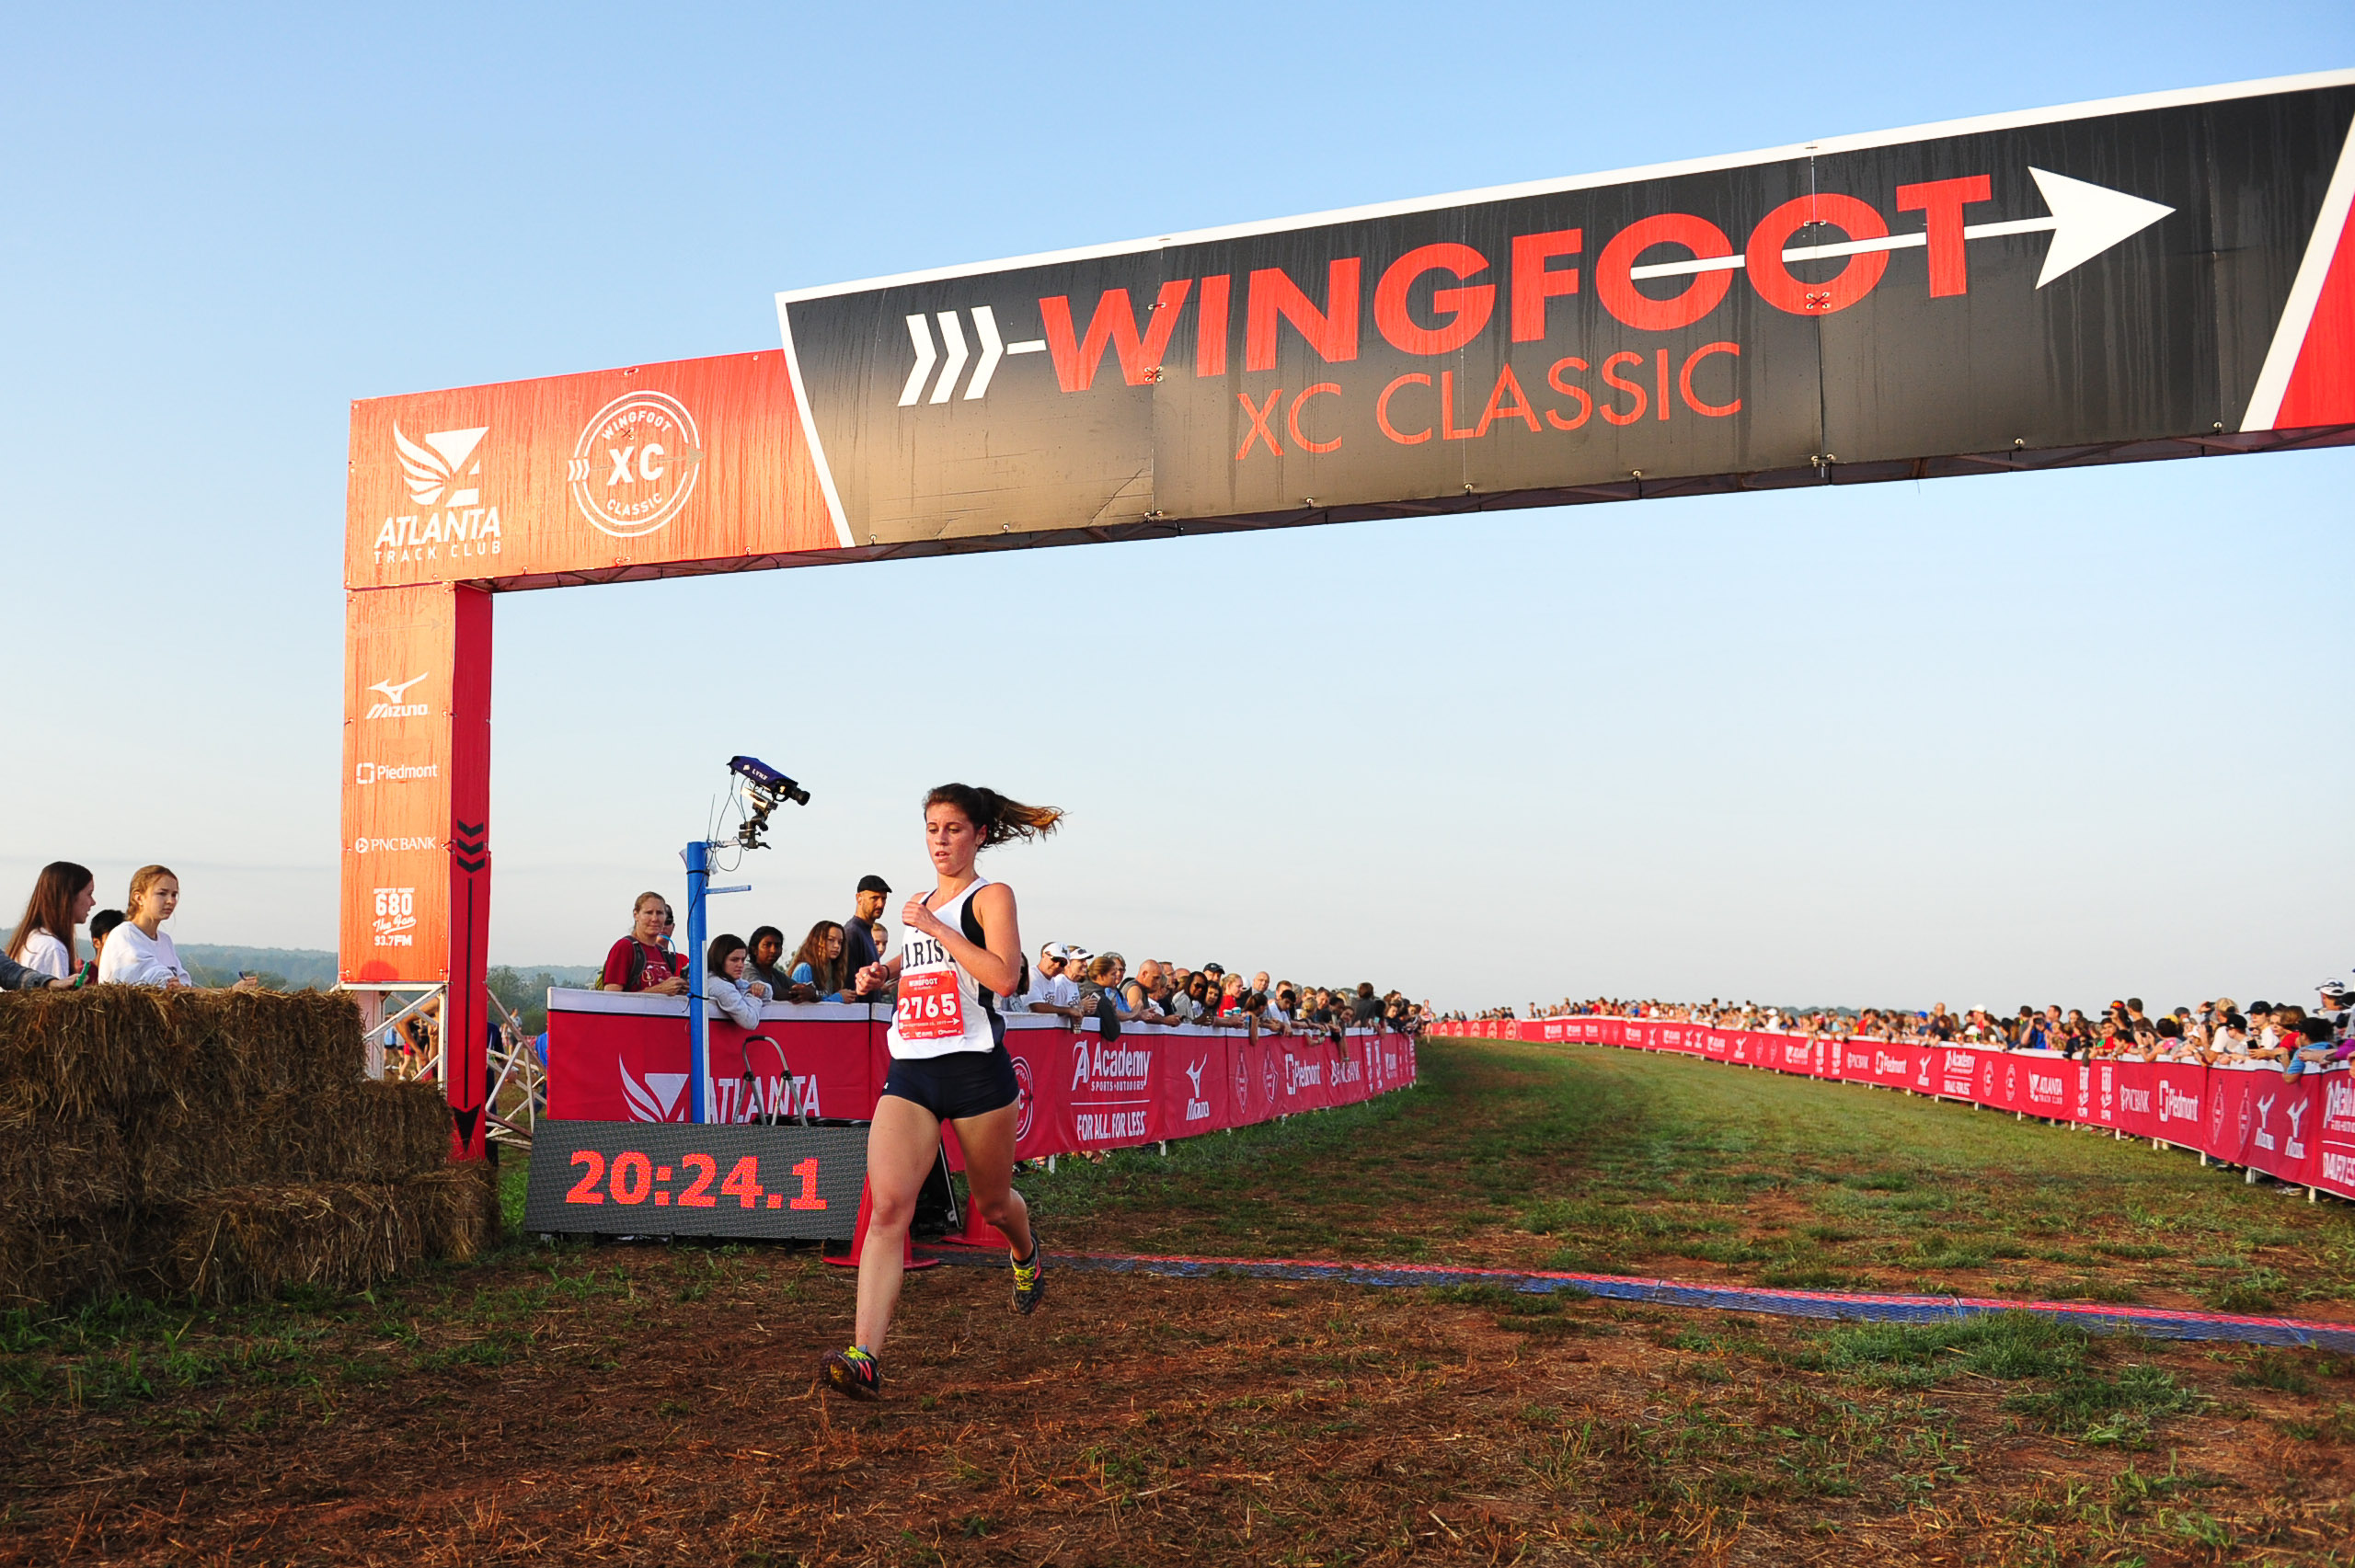 2017 Wingfoot XC Classic Sees Top State, National Performances for High School Races